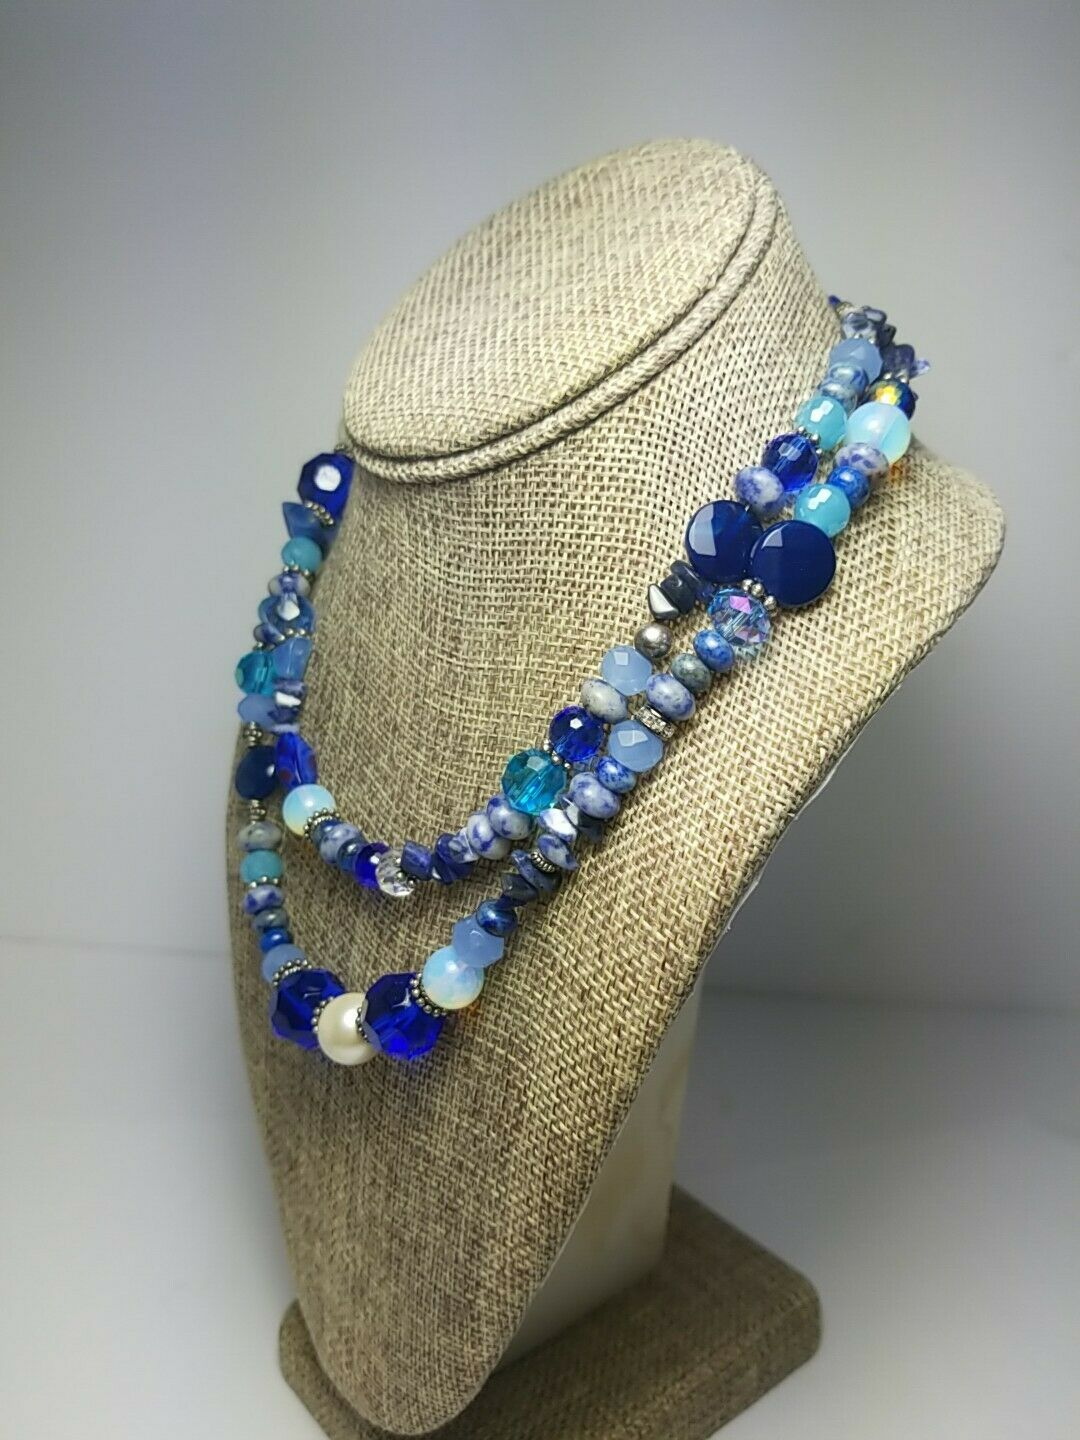 Vintage 1950s JAPAN vintage glass beaded necklace 3 strands of baby blues and sapphire art glass